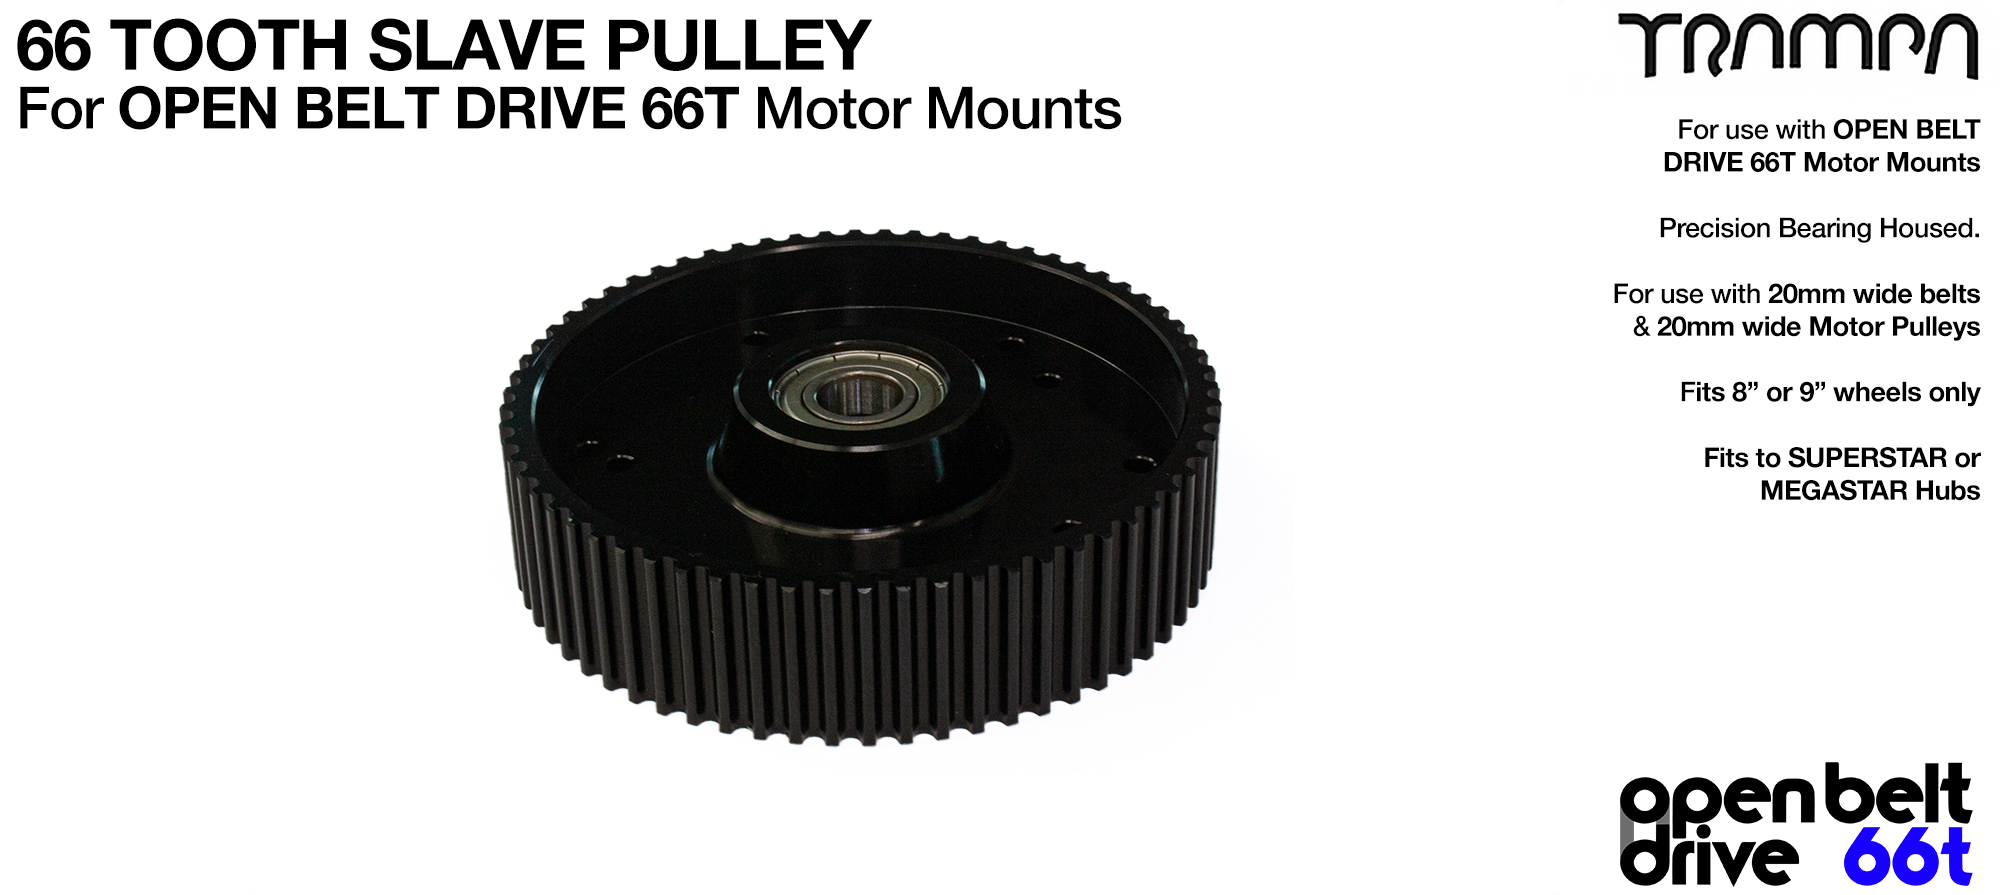 66 Tooth Slave Pulley with Pressed bearing - 20mm OPEN BELT DRIVE Motor Mounts